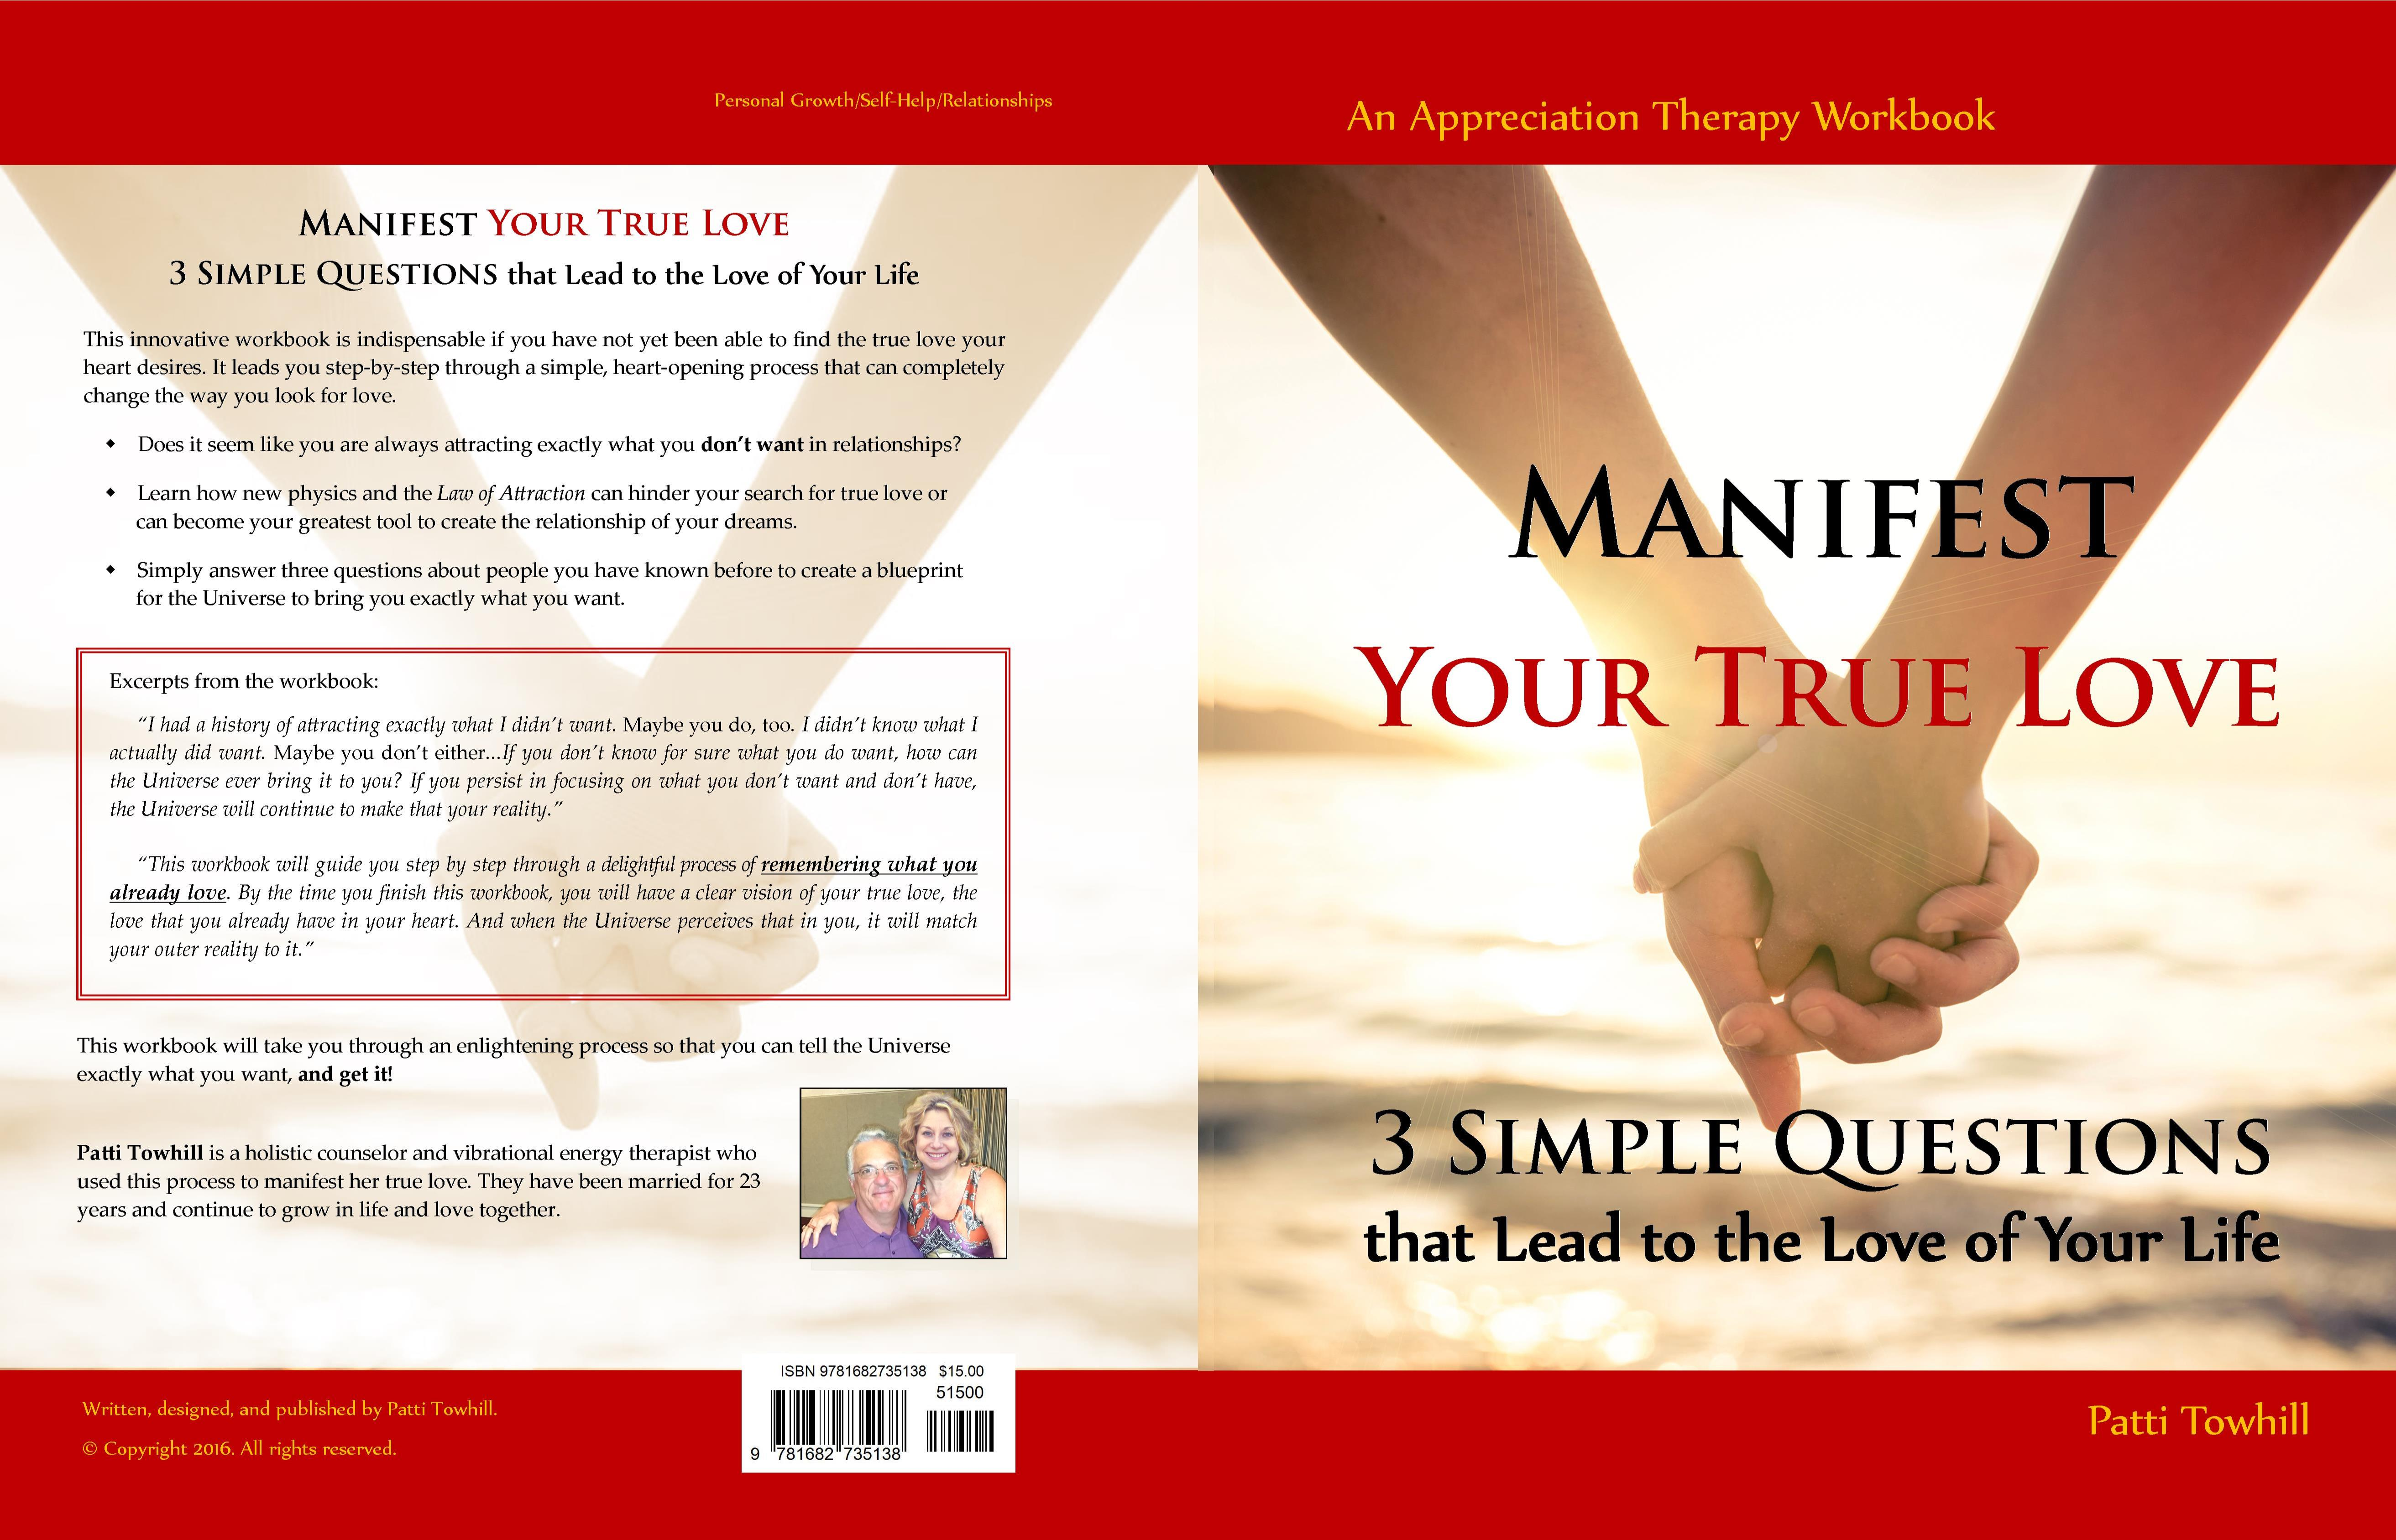 Manifest Your True Love - 3 Simple Questions that Lead to the Love of Your Life - An Appreciation Therapy Workbook cover image